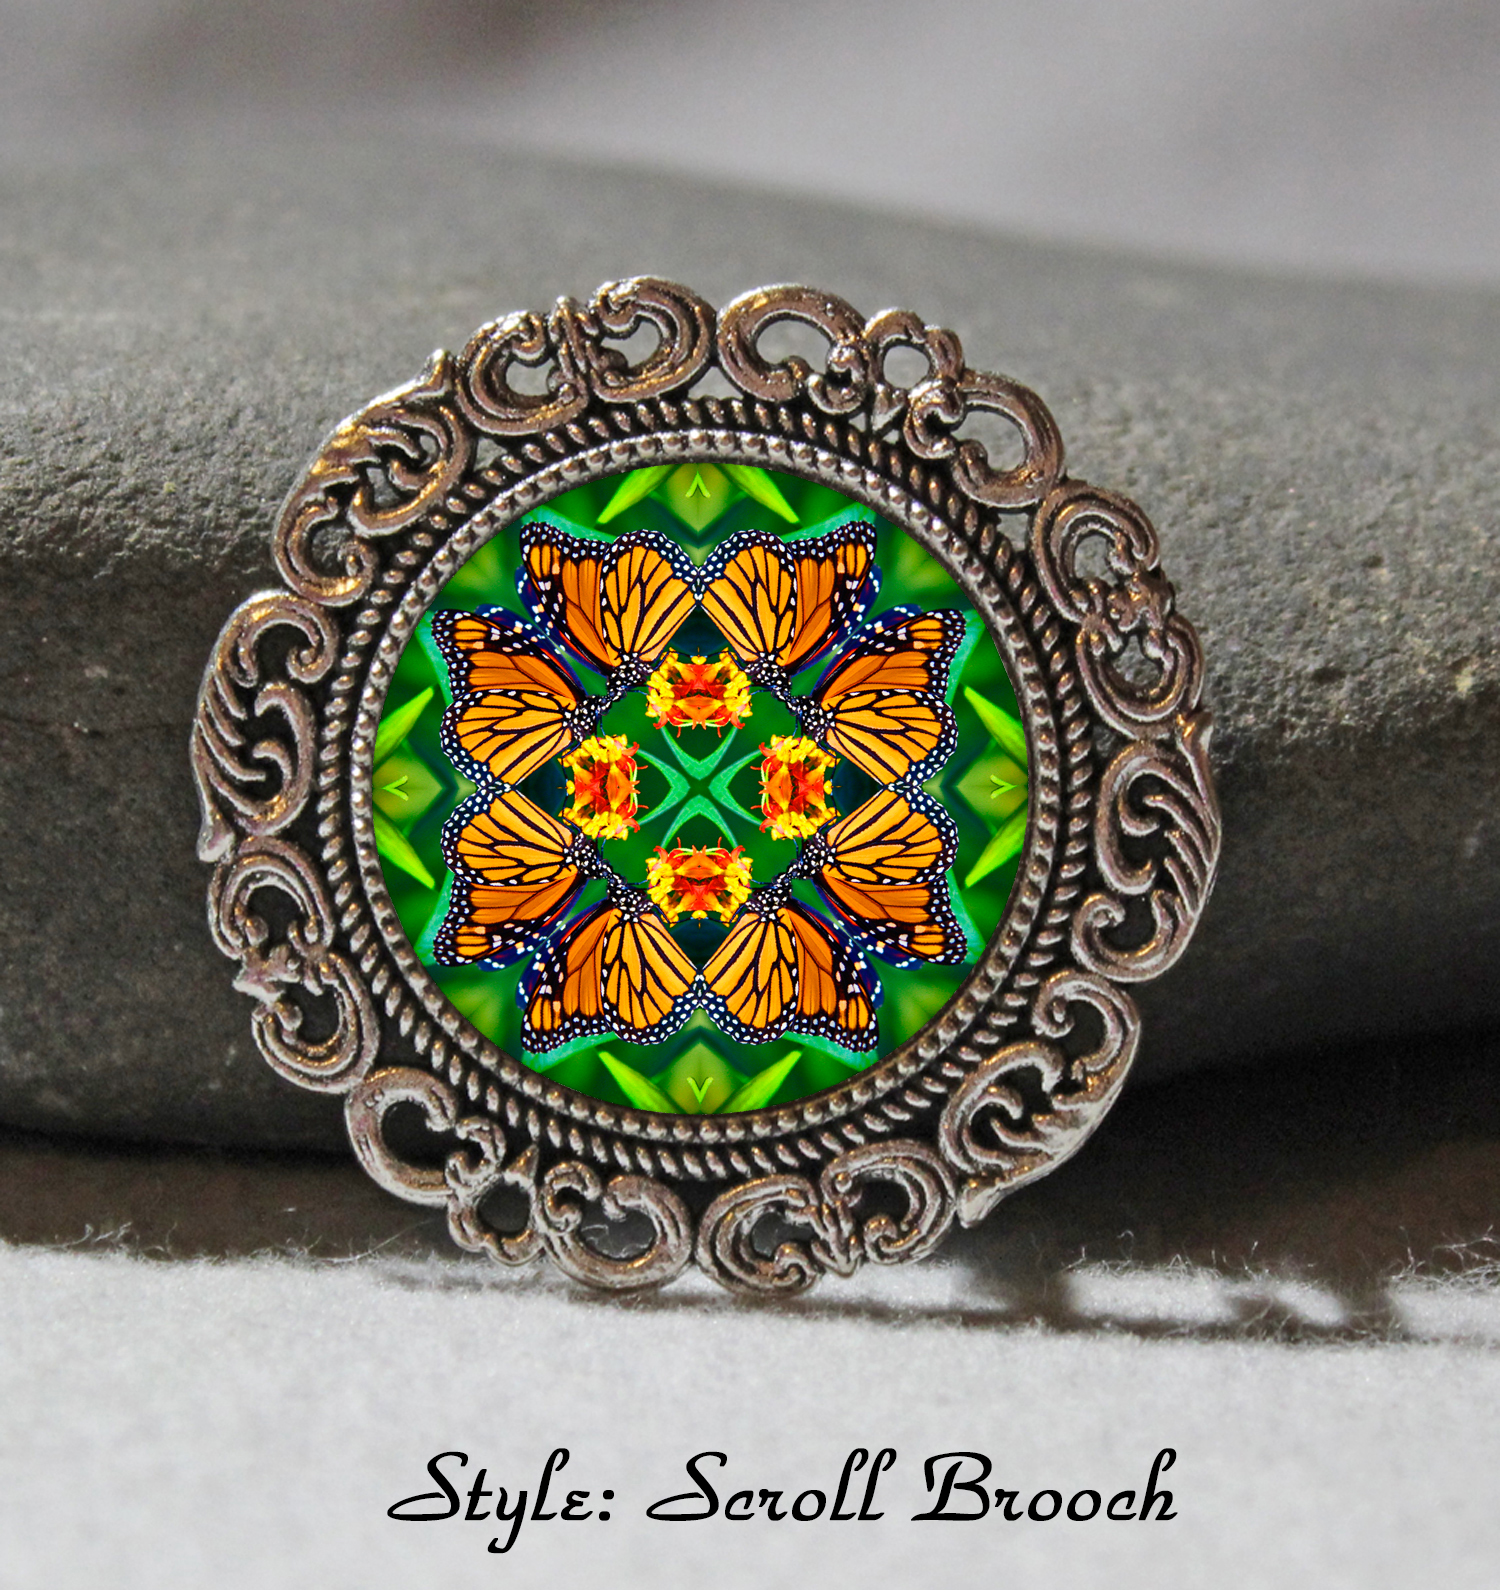 850166ccb35 Brooch Lapel Pin Collar Pin Hat Pin Scarf Pin Monarch Butterfly Mandala  Sacred Geometry Unique Gift For Her Transcendence